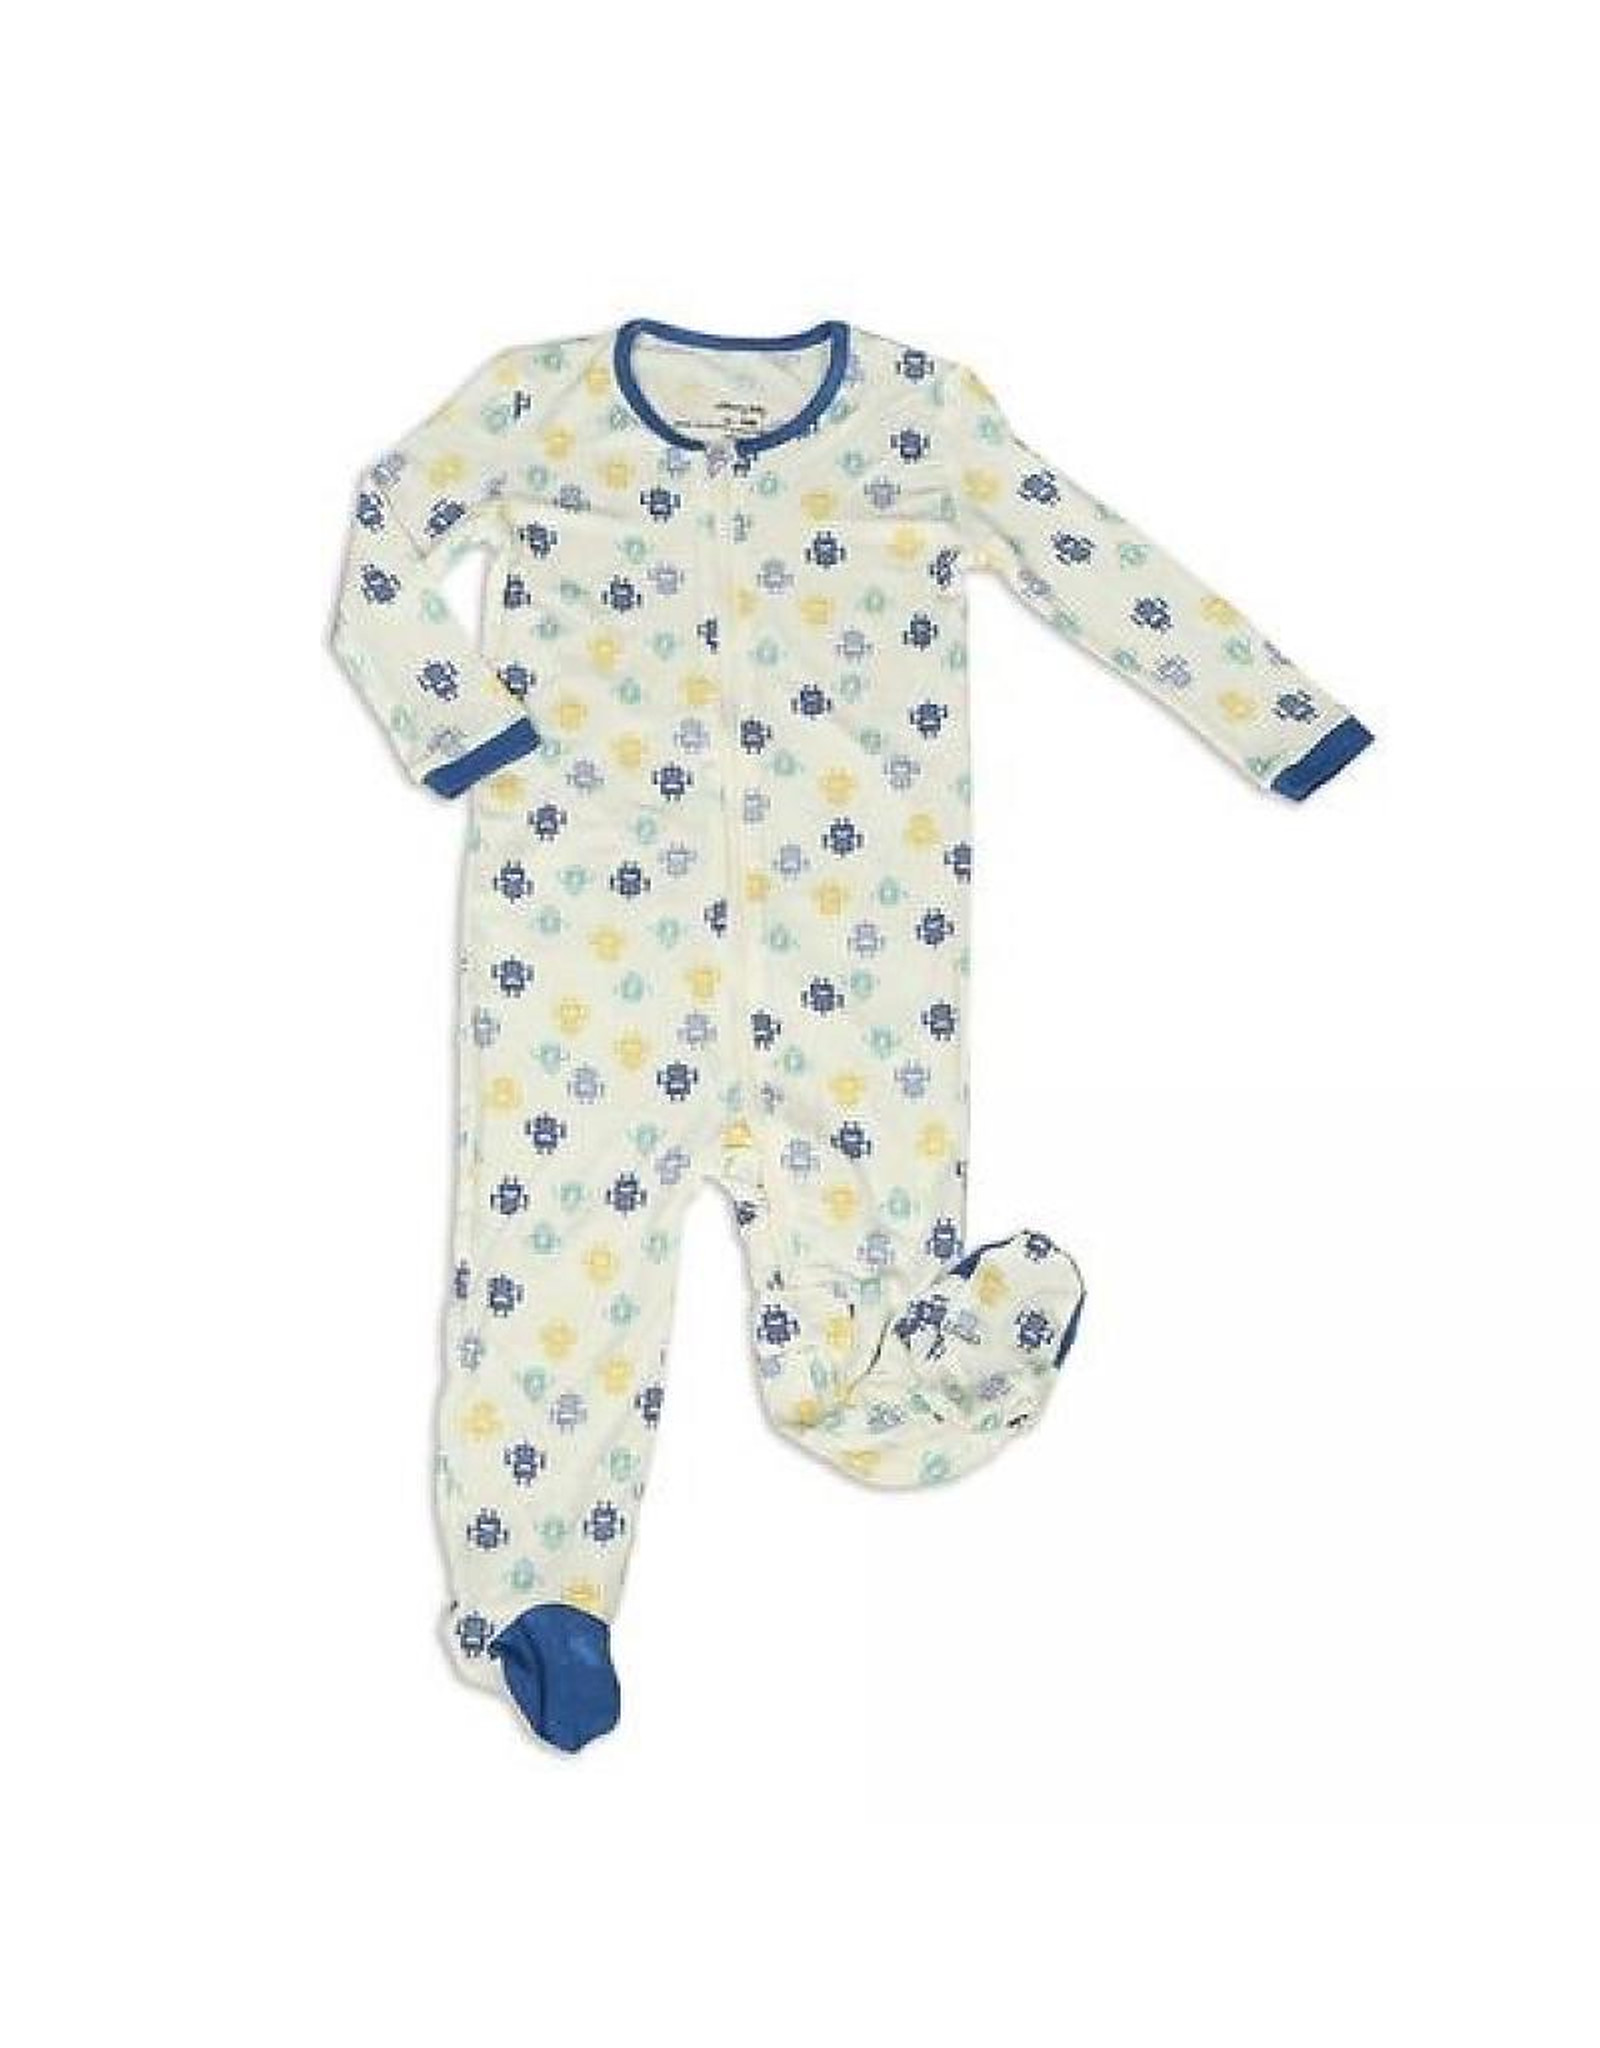 Bamboo Footed Sleeper Robot - Silkberry Baby - Ava s Appletree f8652defb